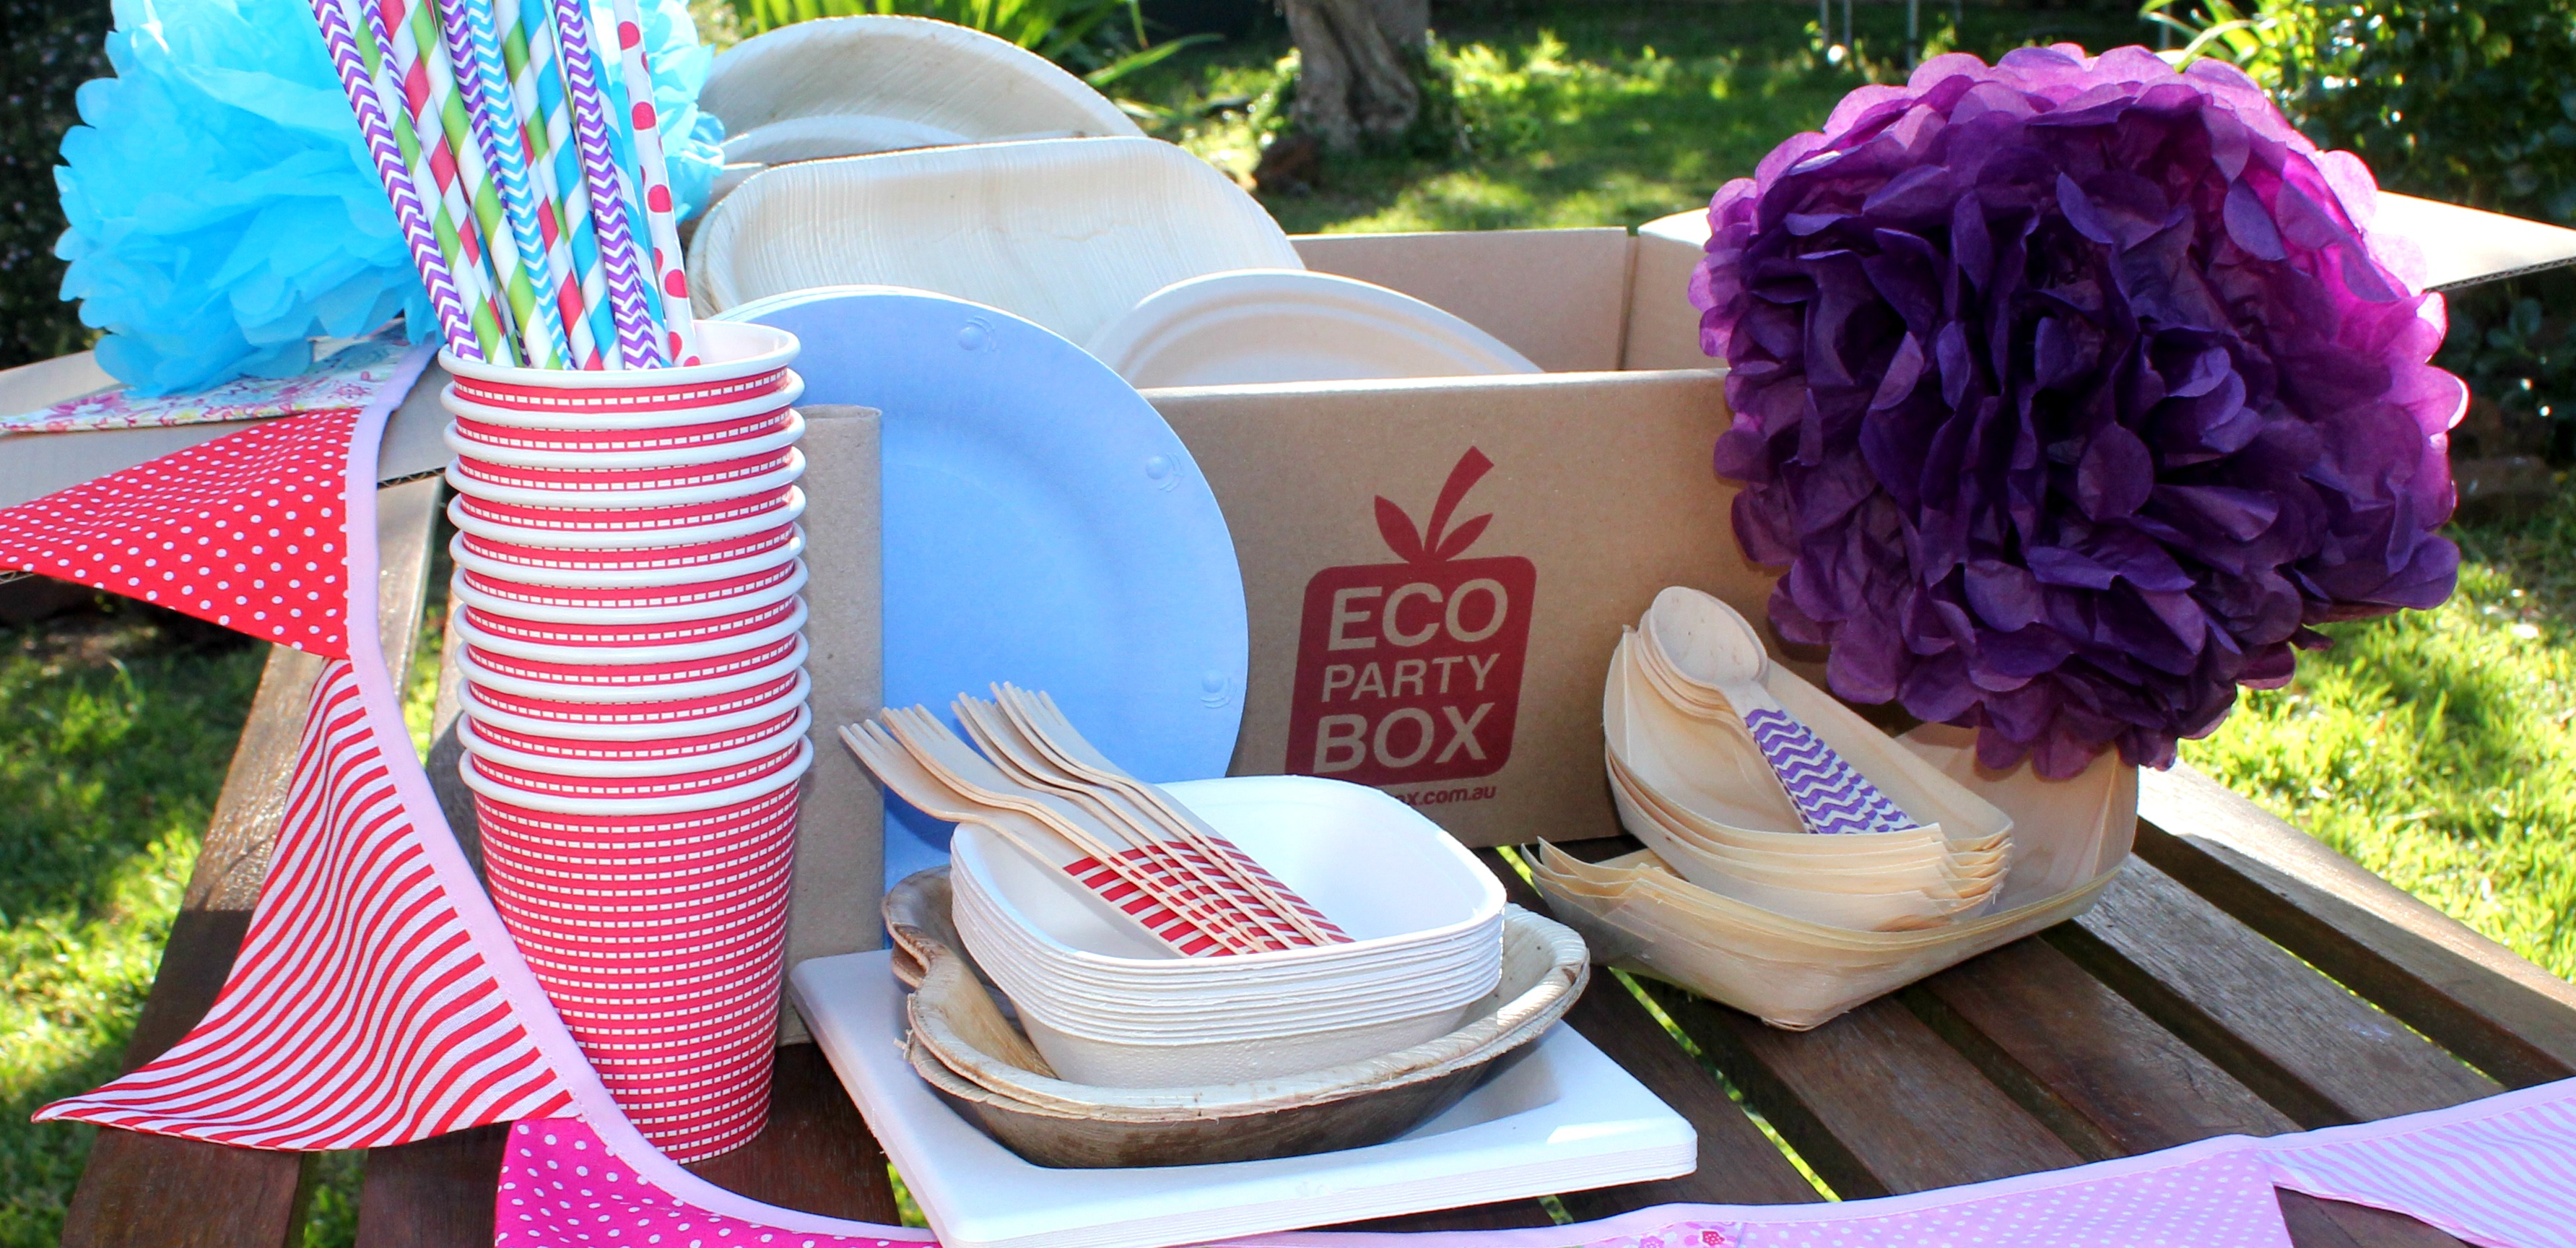 eco-party-box-slider-pic.jpg